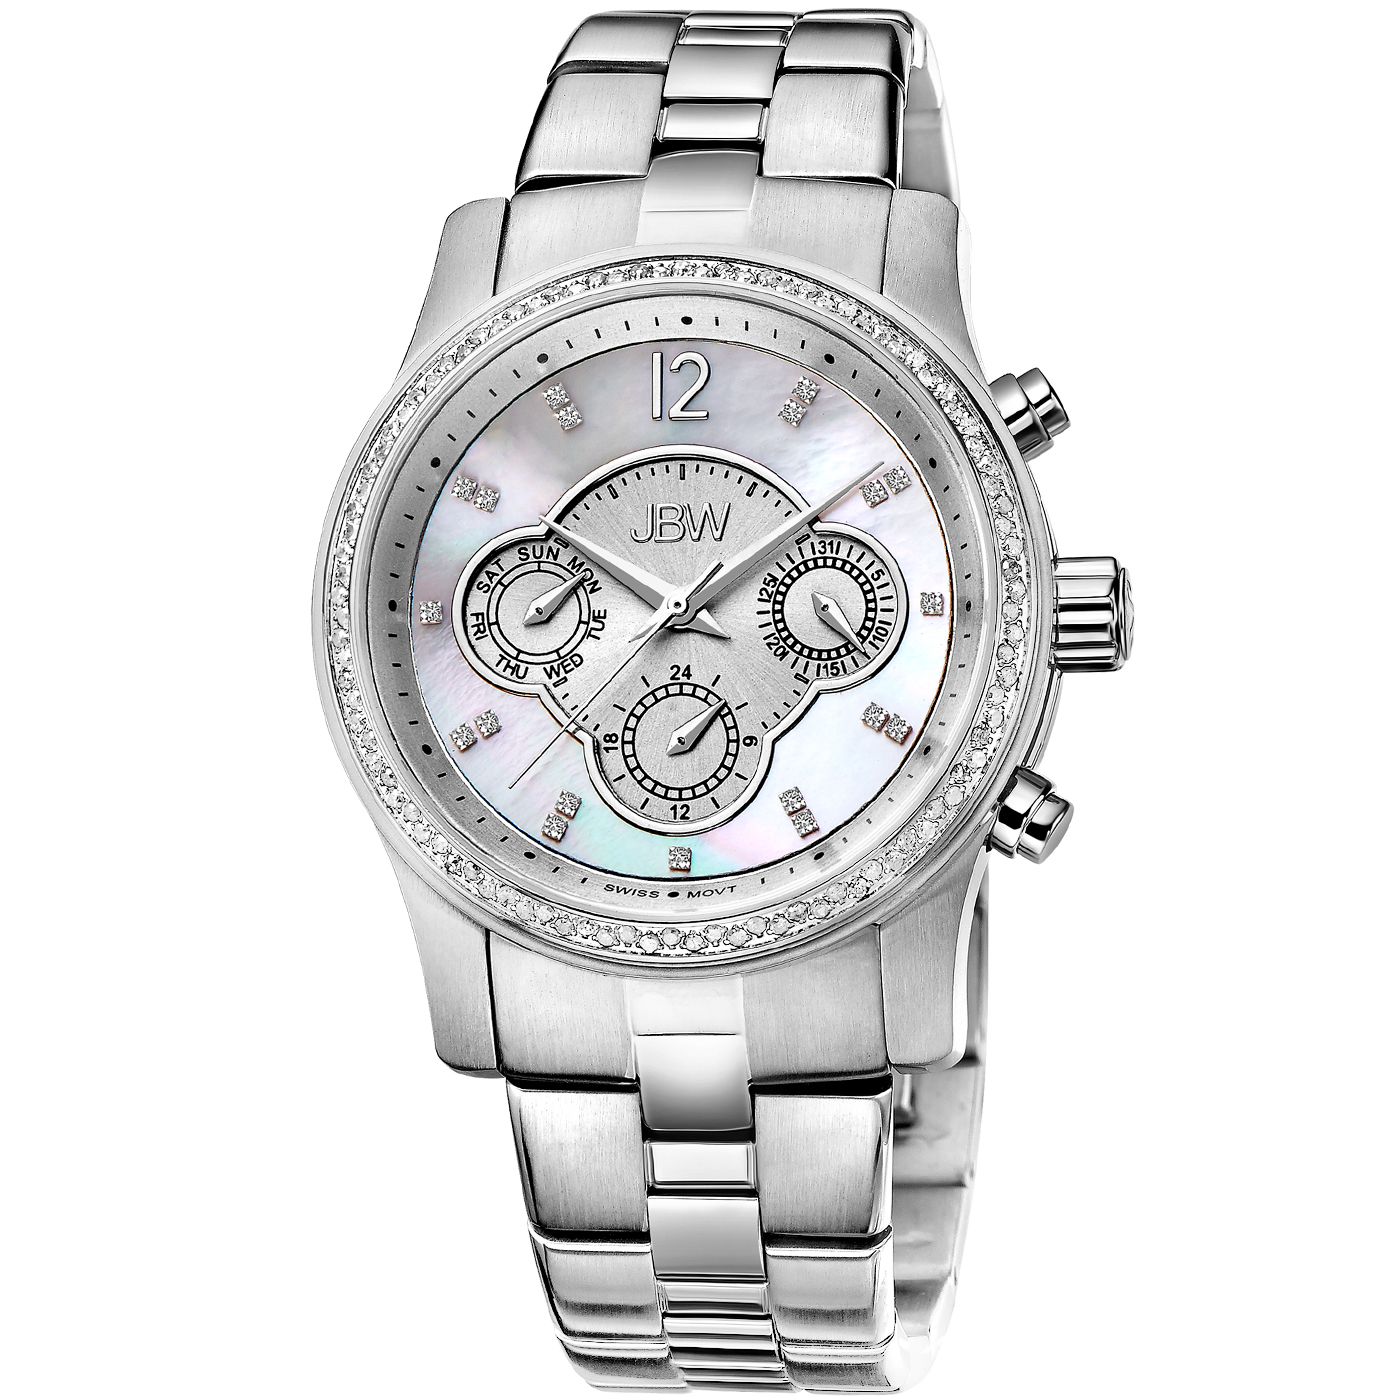 JBW Watches NOVA Women's Diamond Watch J6272A